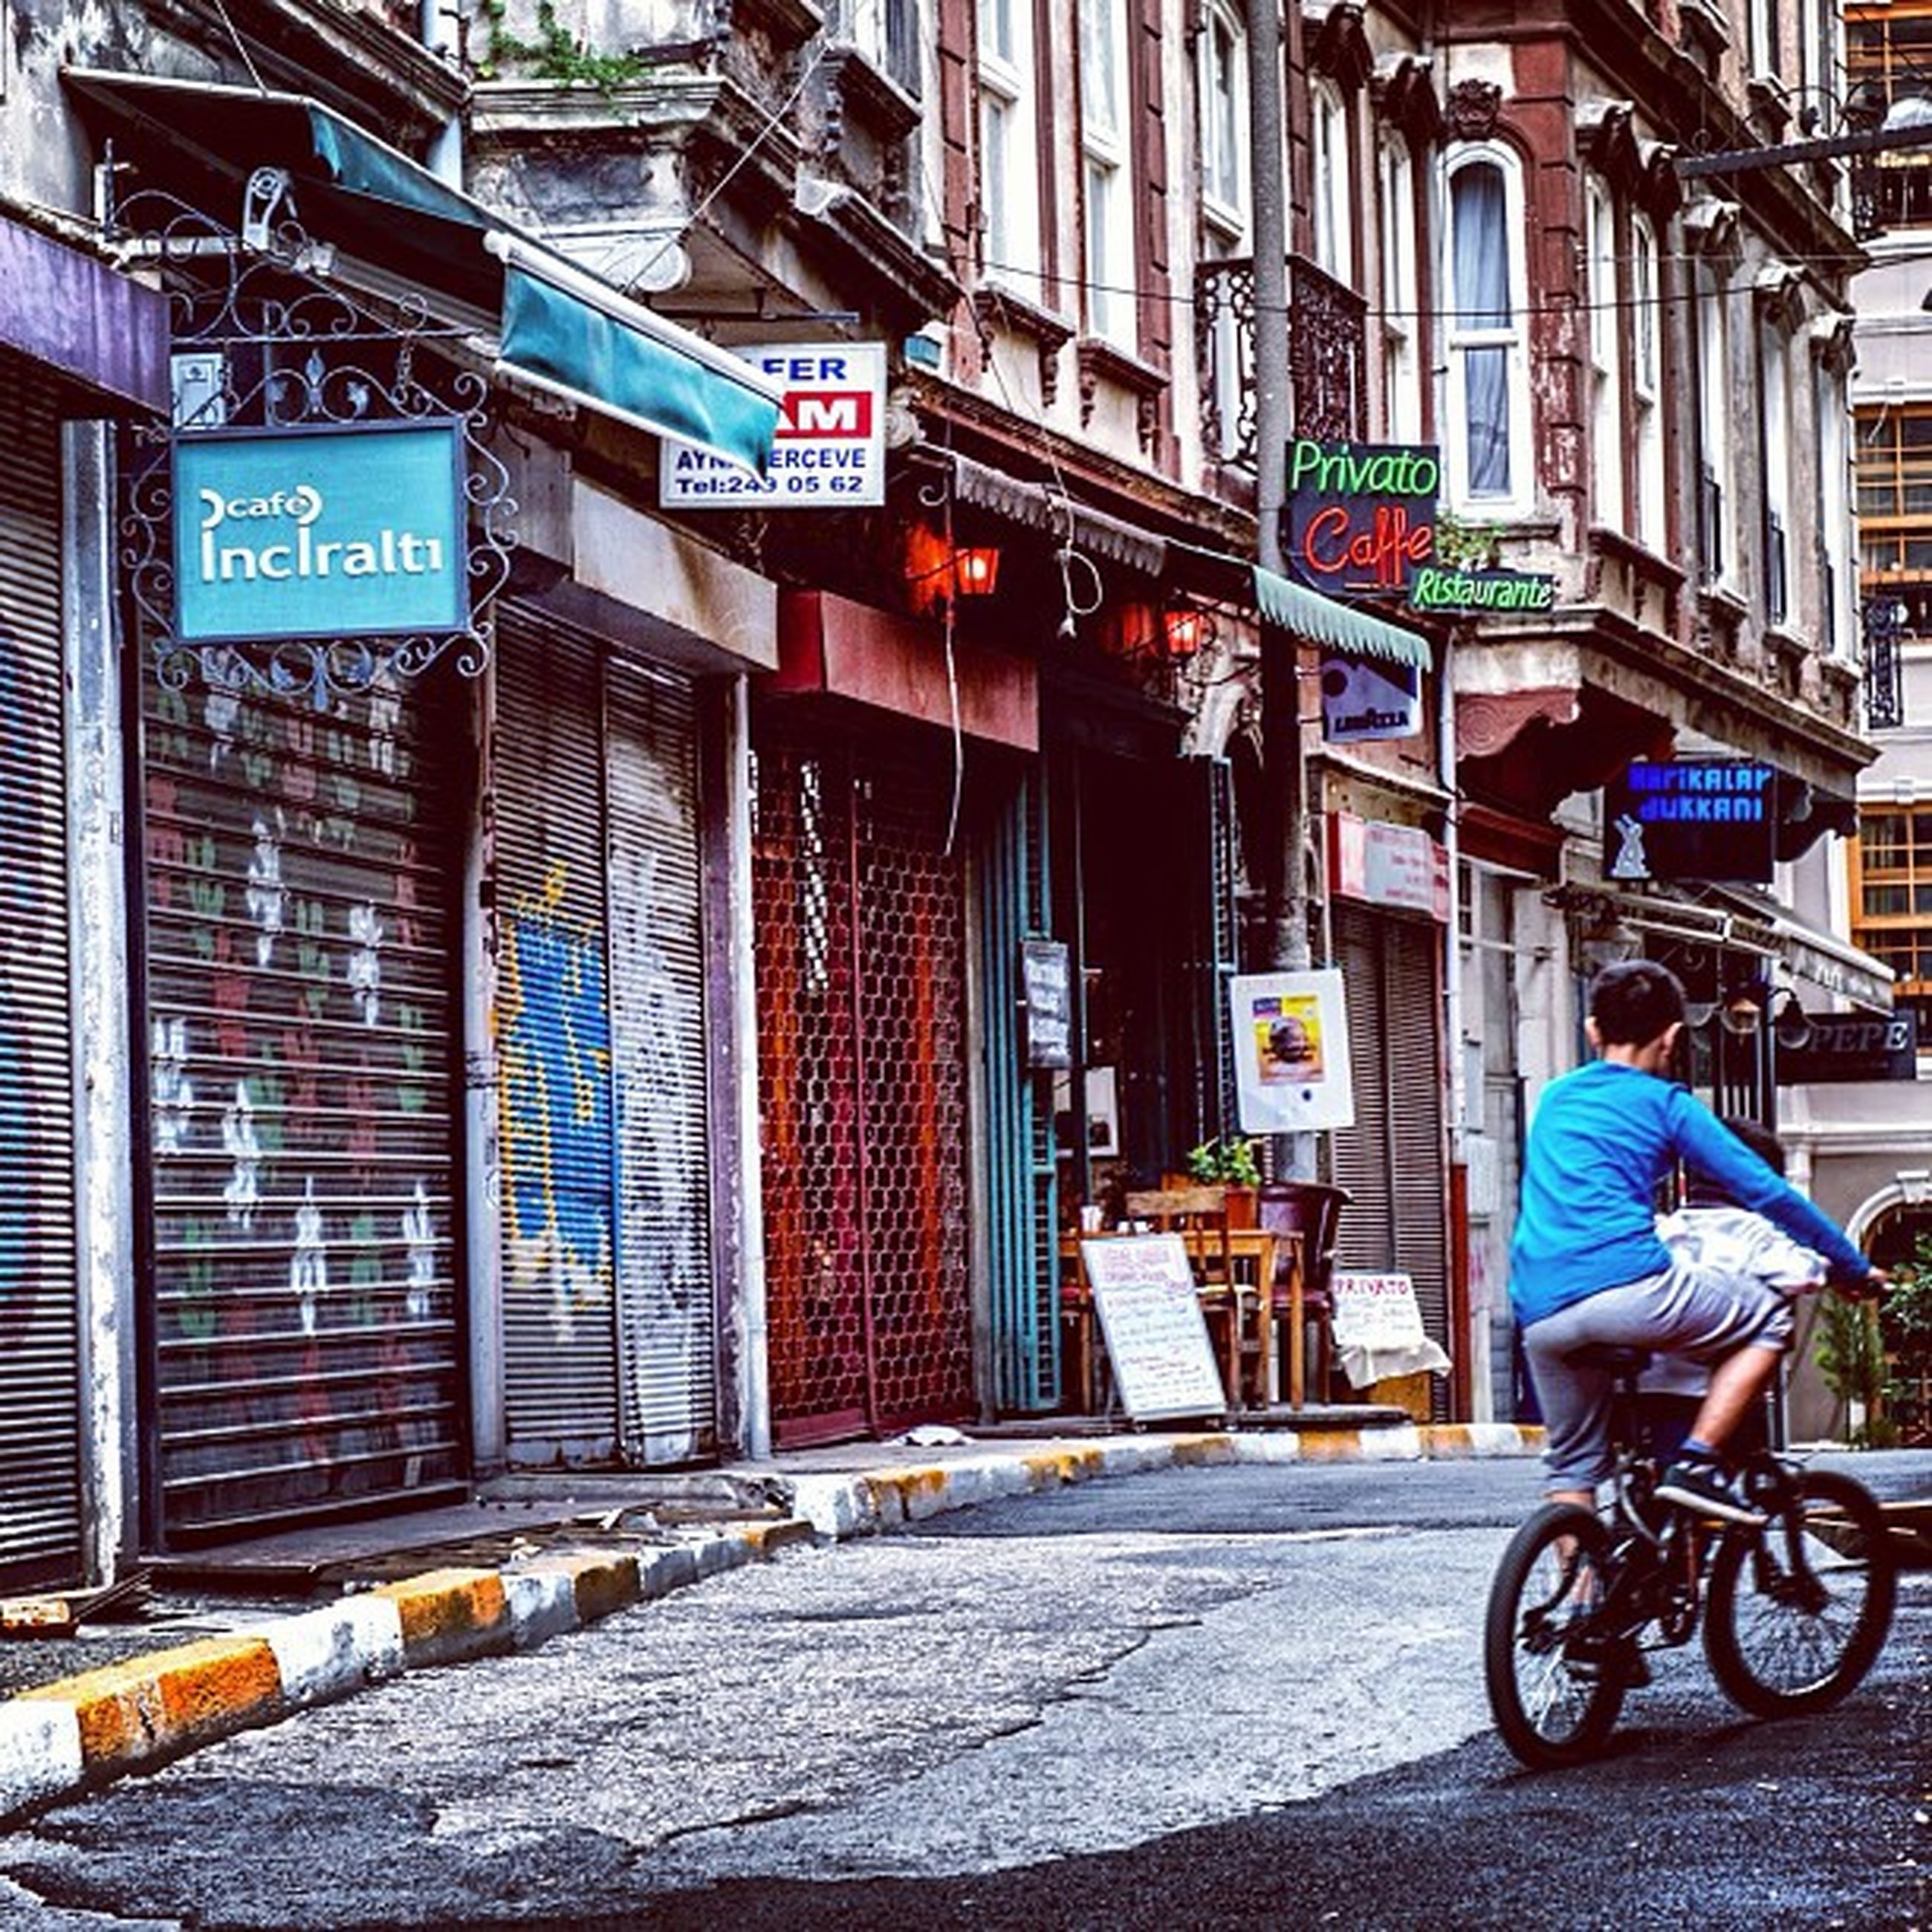 building exterior, architecture, bicycle, built structure, transportation, street, city, mode of transport, land vehicle, text, sidewalk, stationary, cobblestone, city life, building, parking, road, day